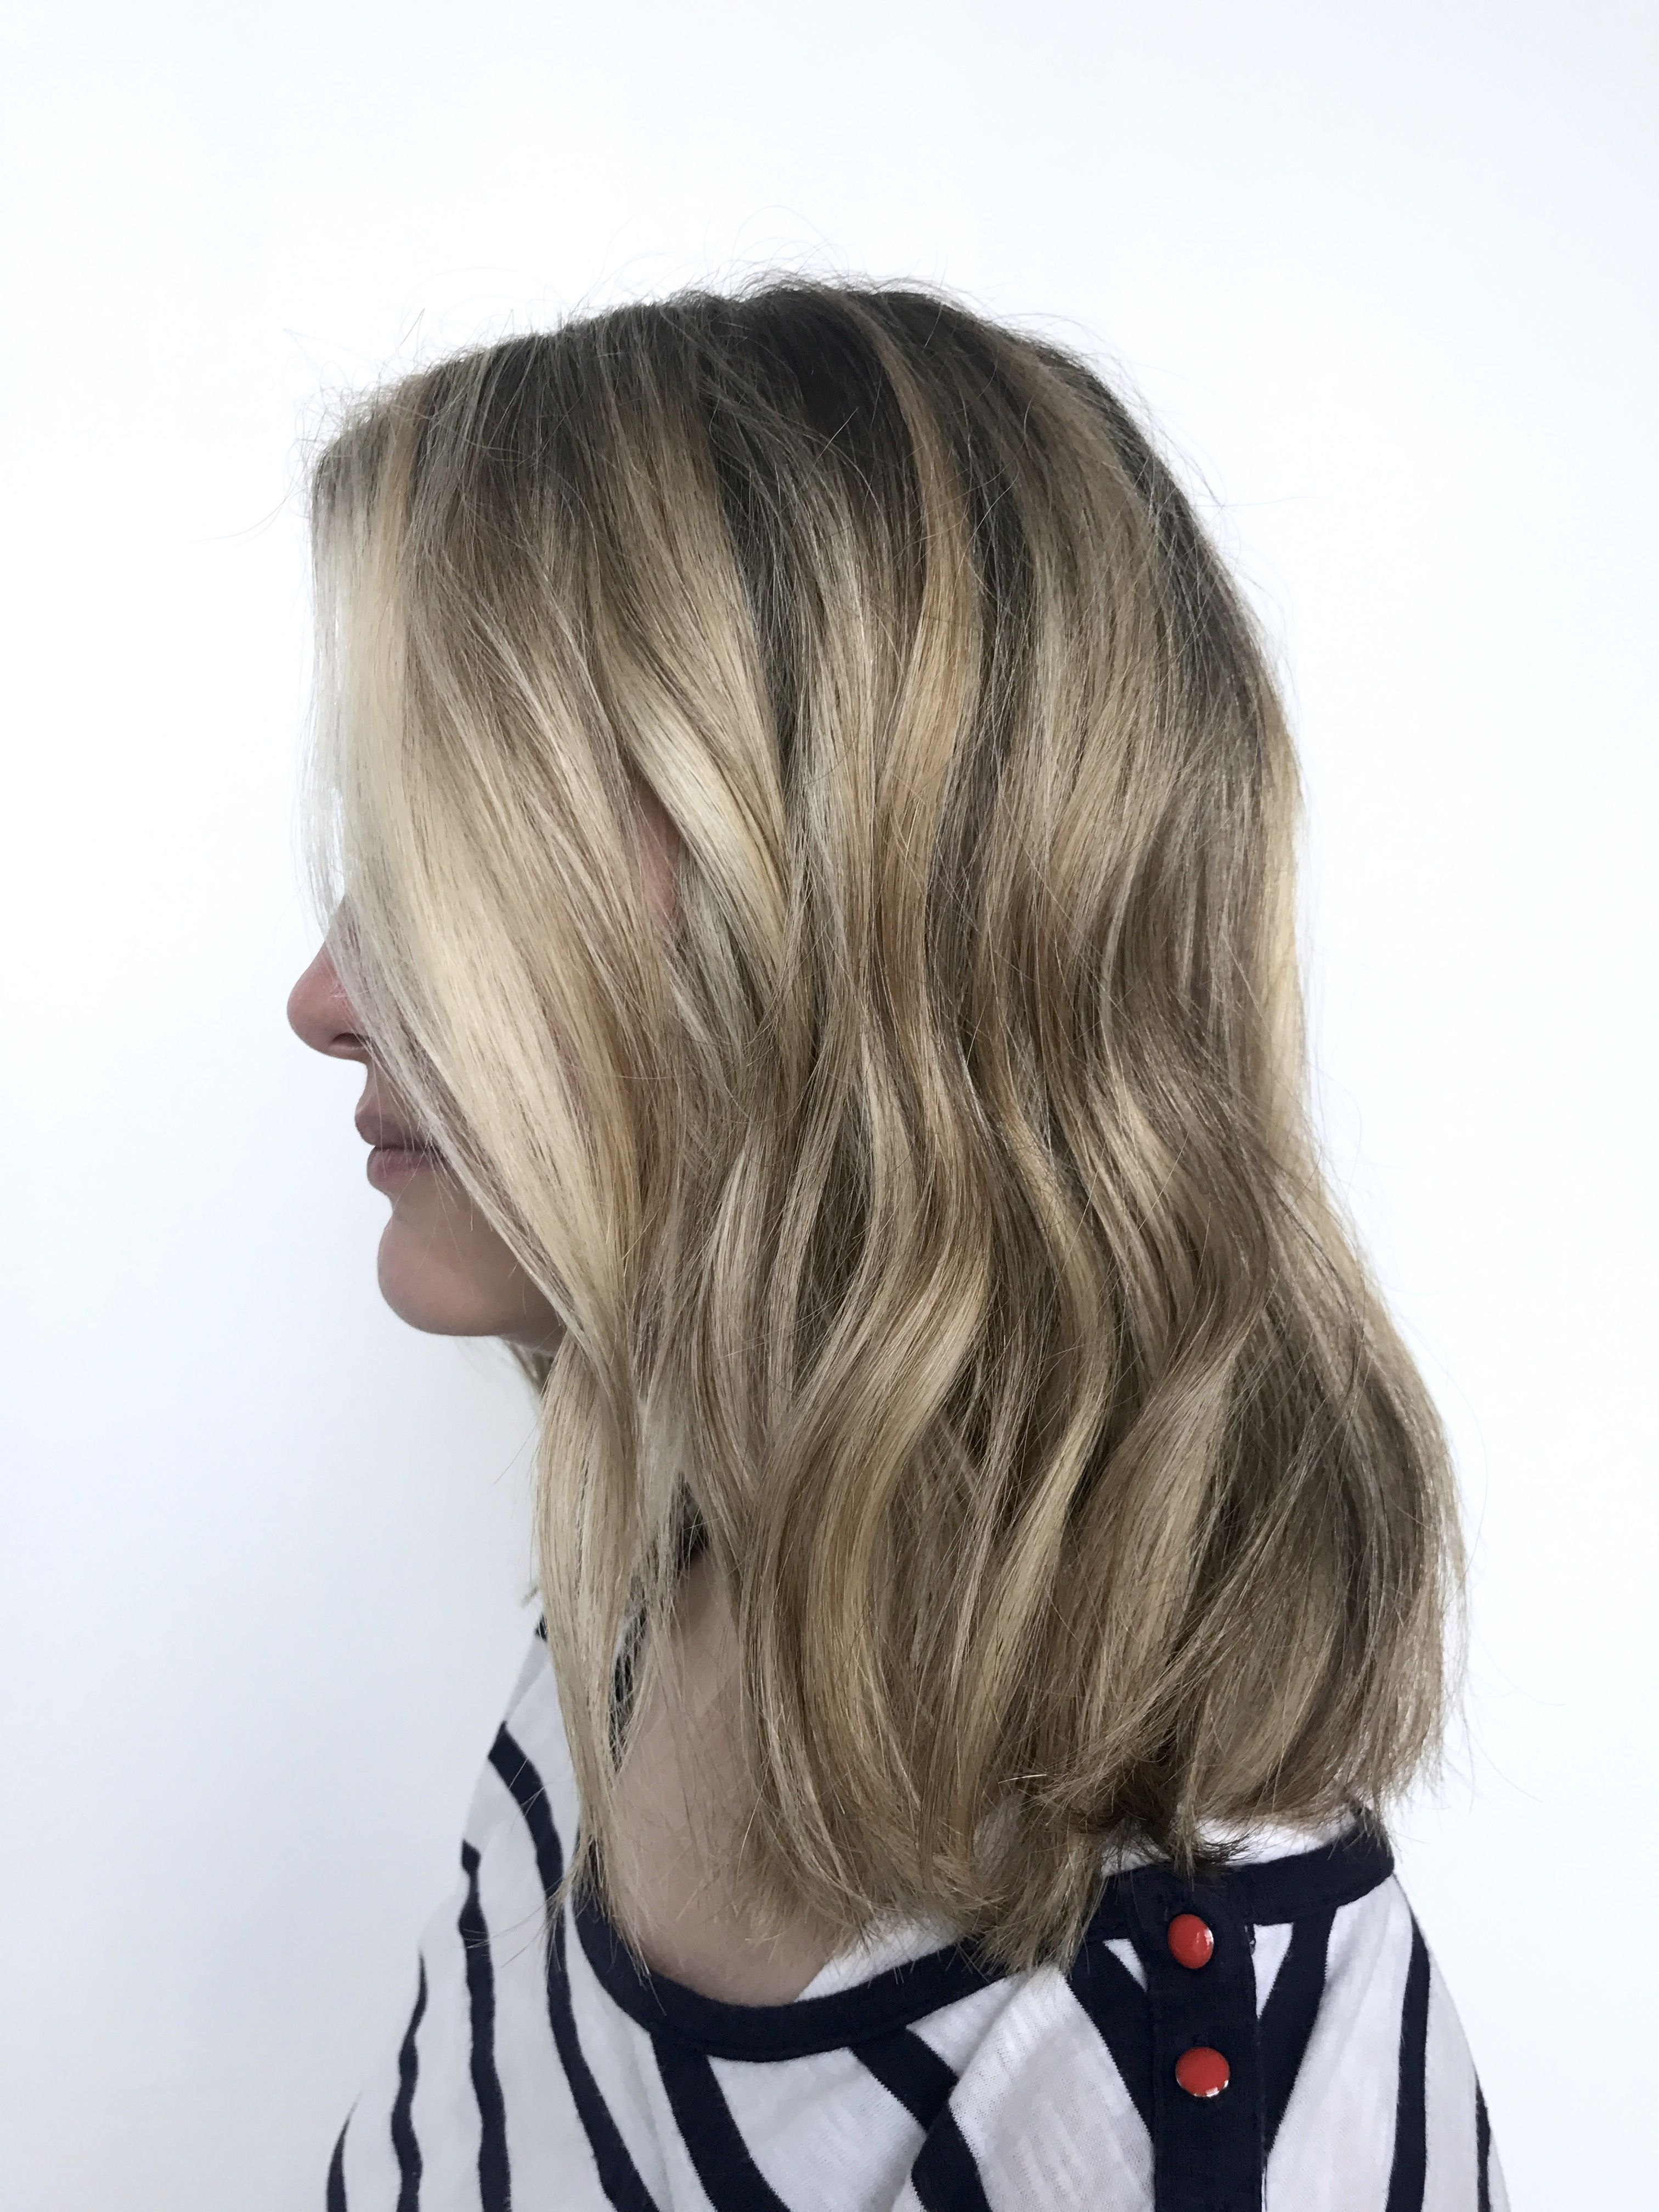 Haircolor Using Color Me By Kevin Murphy All Natural Ammonia Free Haircolor In Hinsdale Il At Levato Salon Levato Best Hair Salon Cool Hairstyles Hair Salon